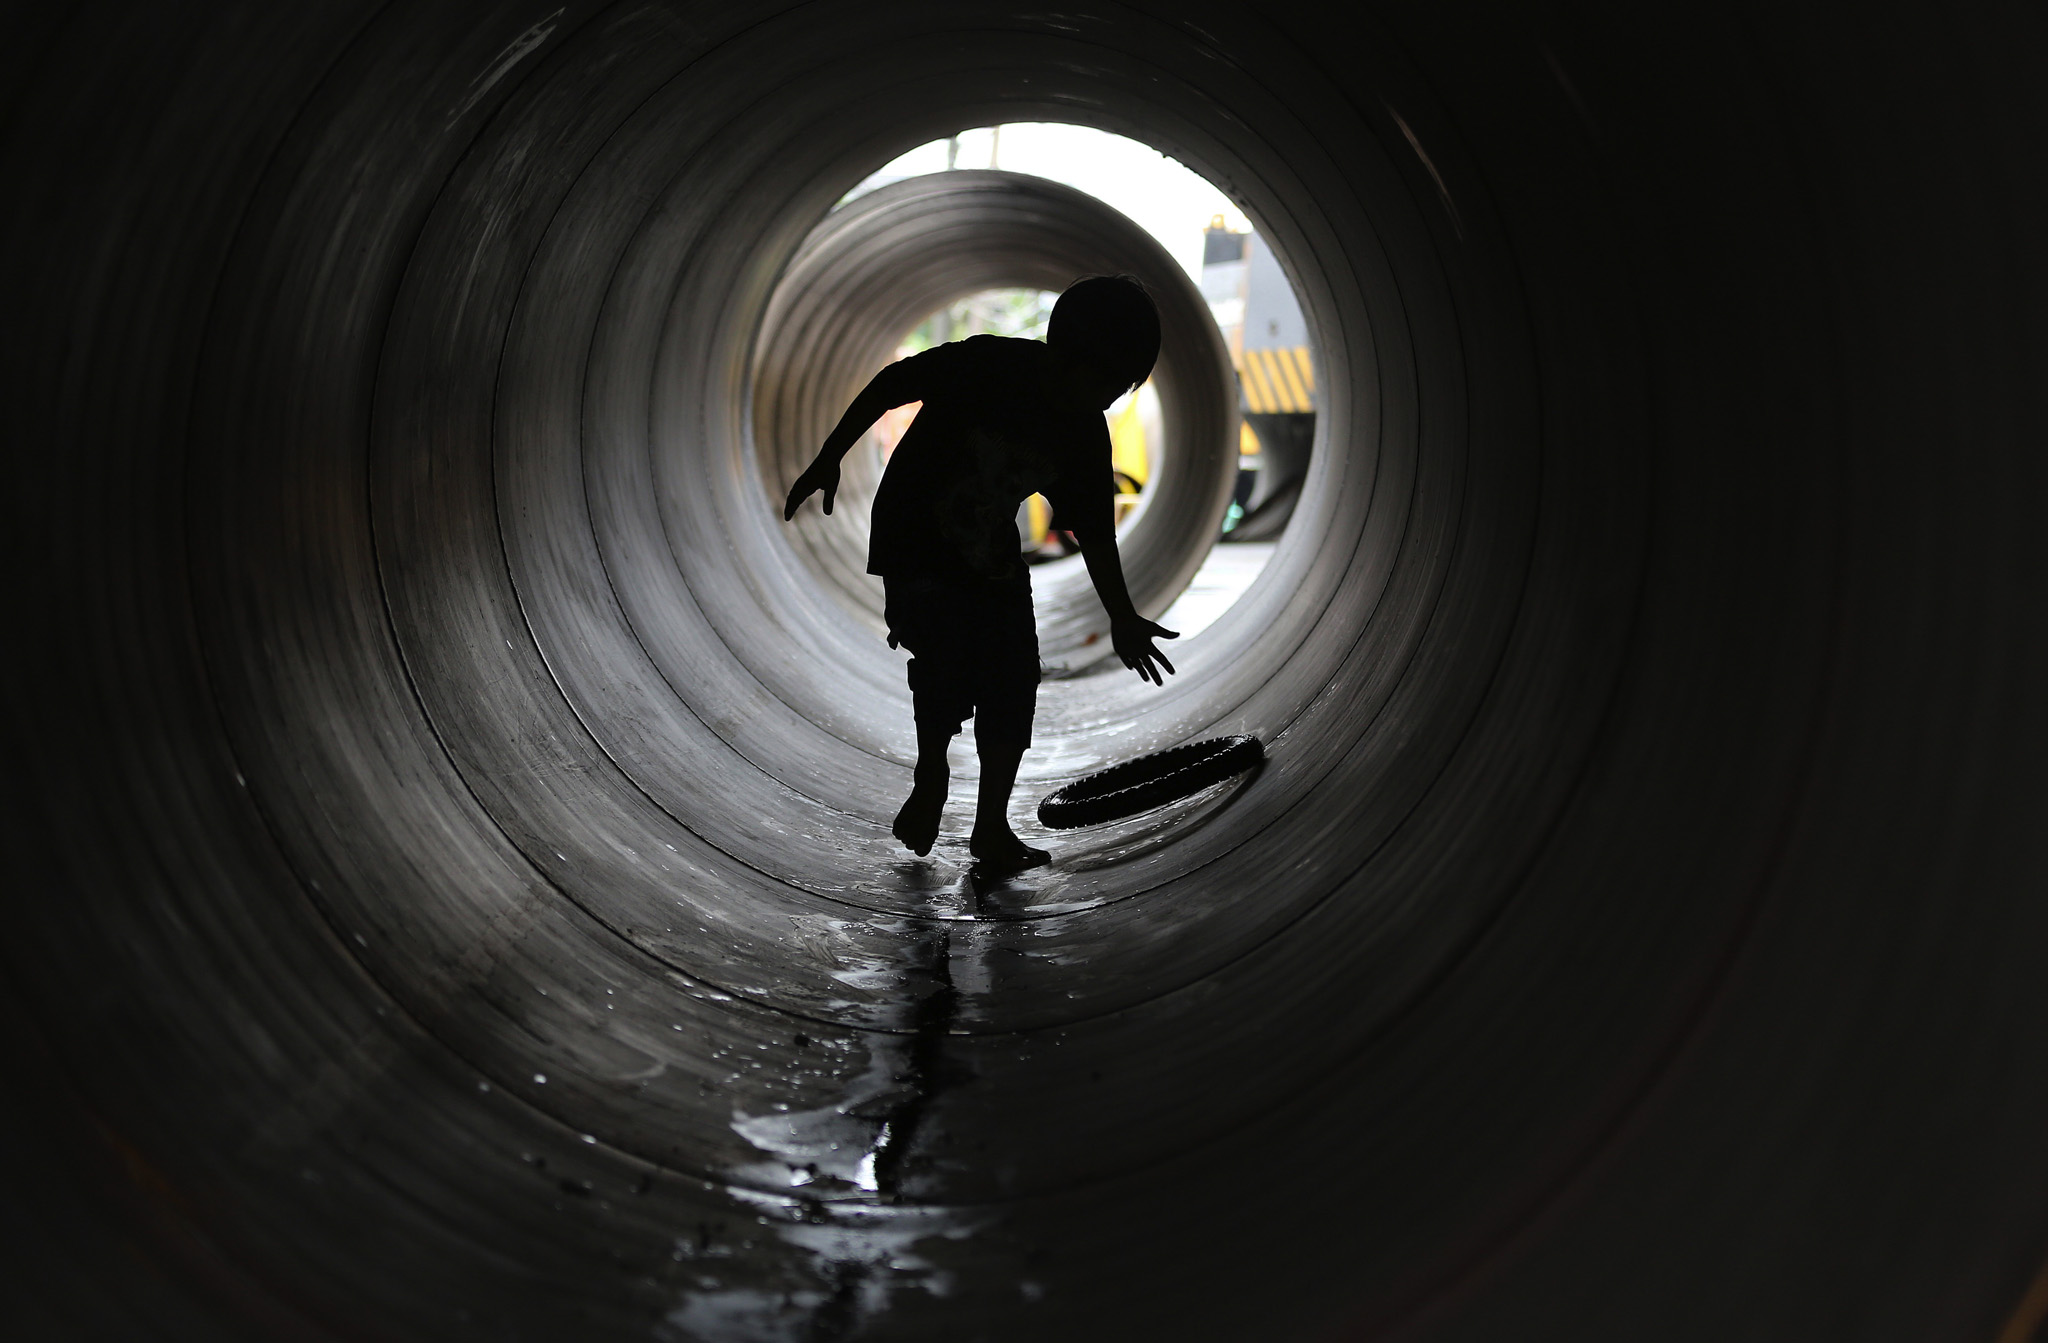 A Filipino boy plays inside a large metal tube that will be used to repair an old bridge in suburban Malabon, north of Manila, Philippines.